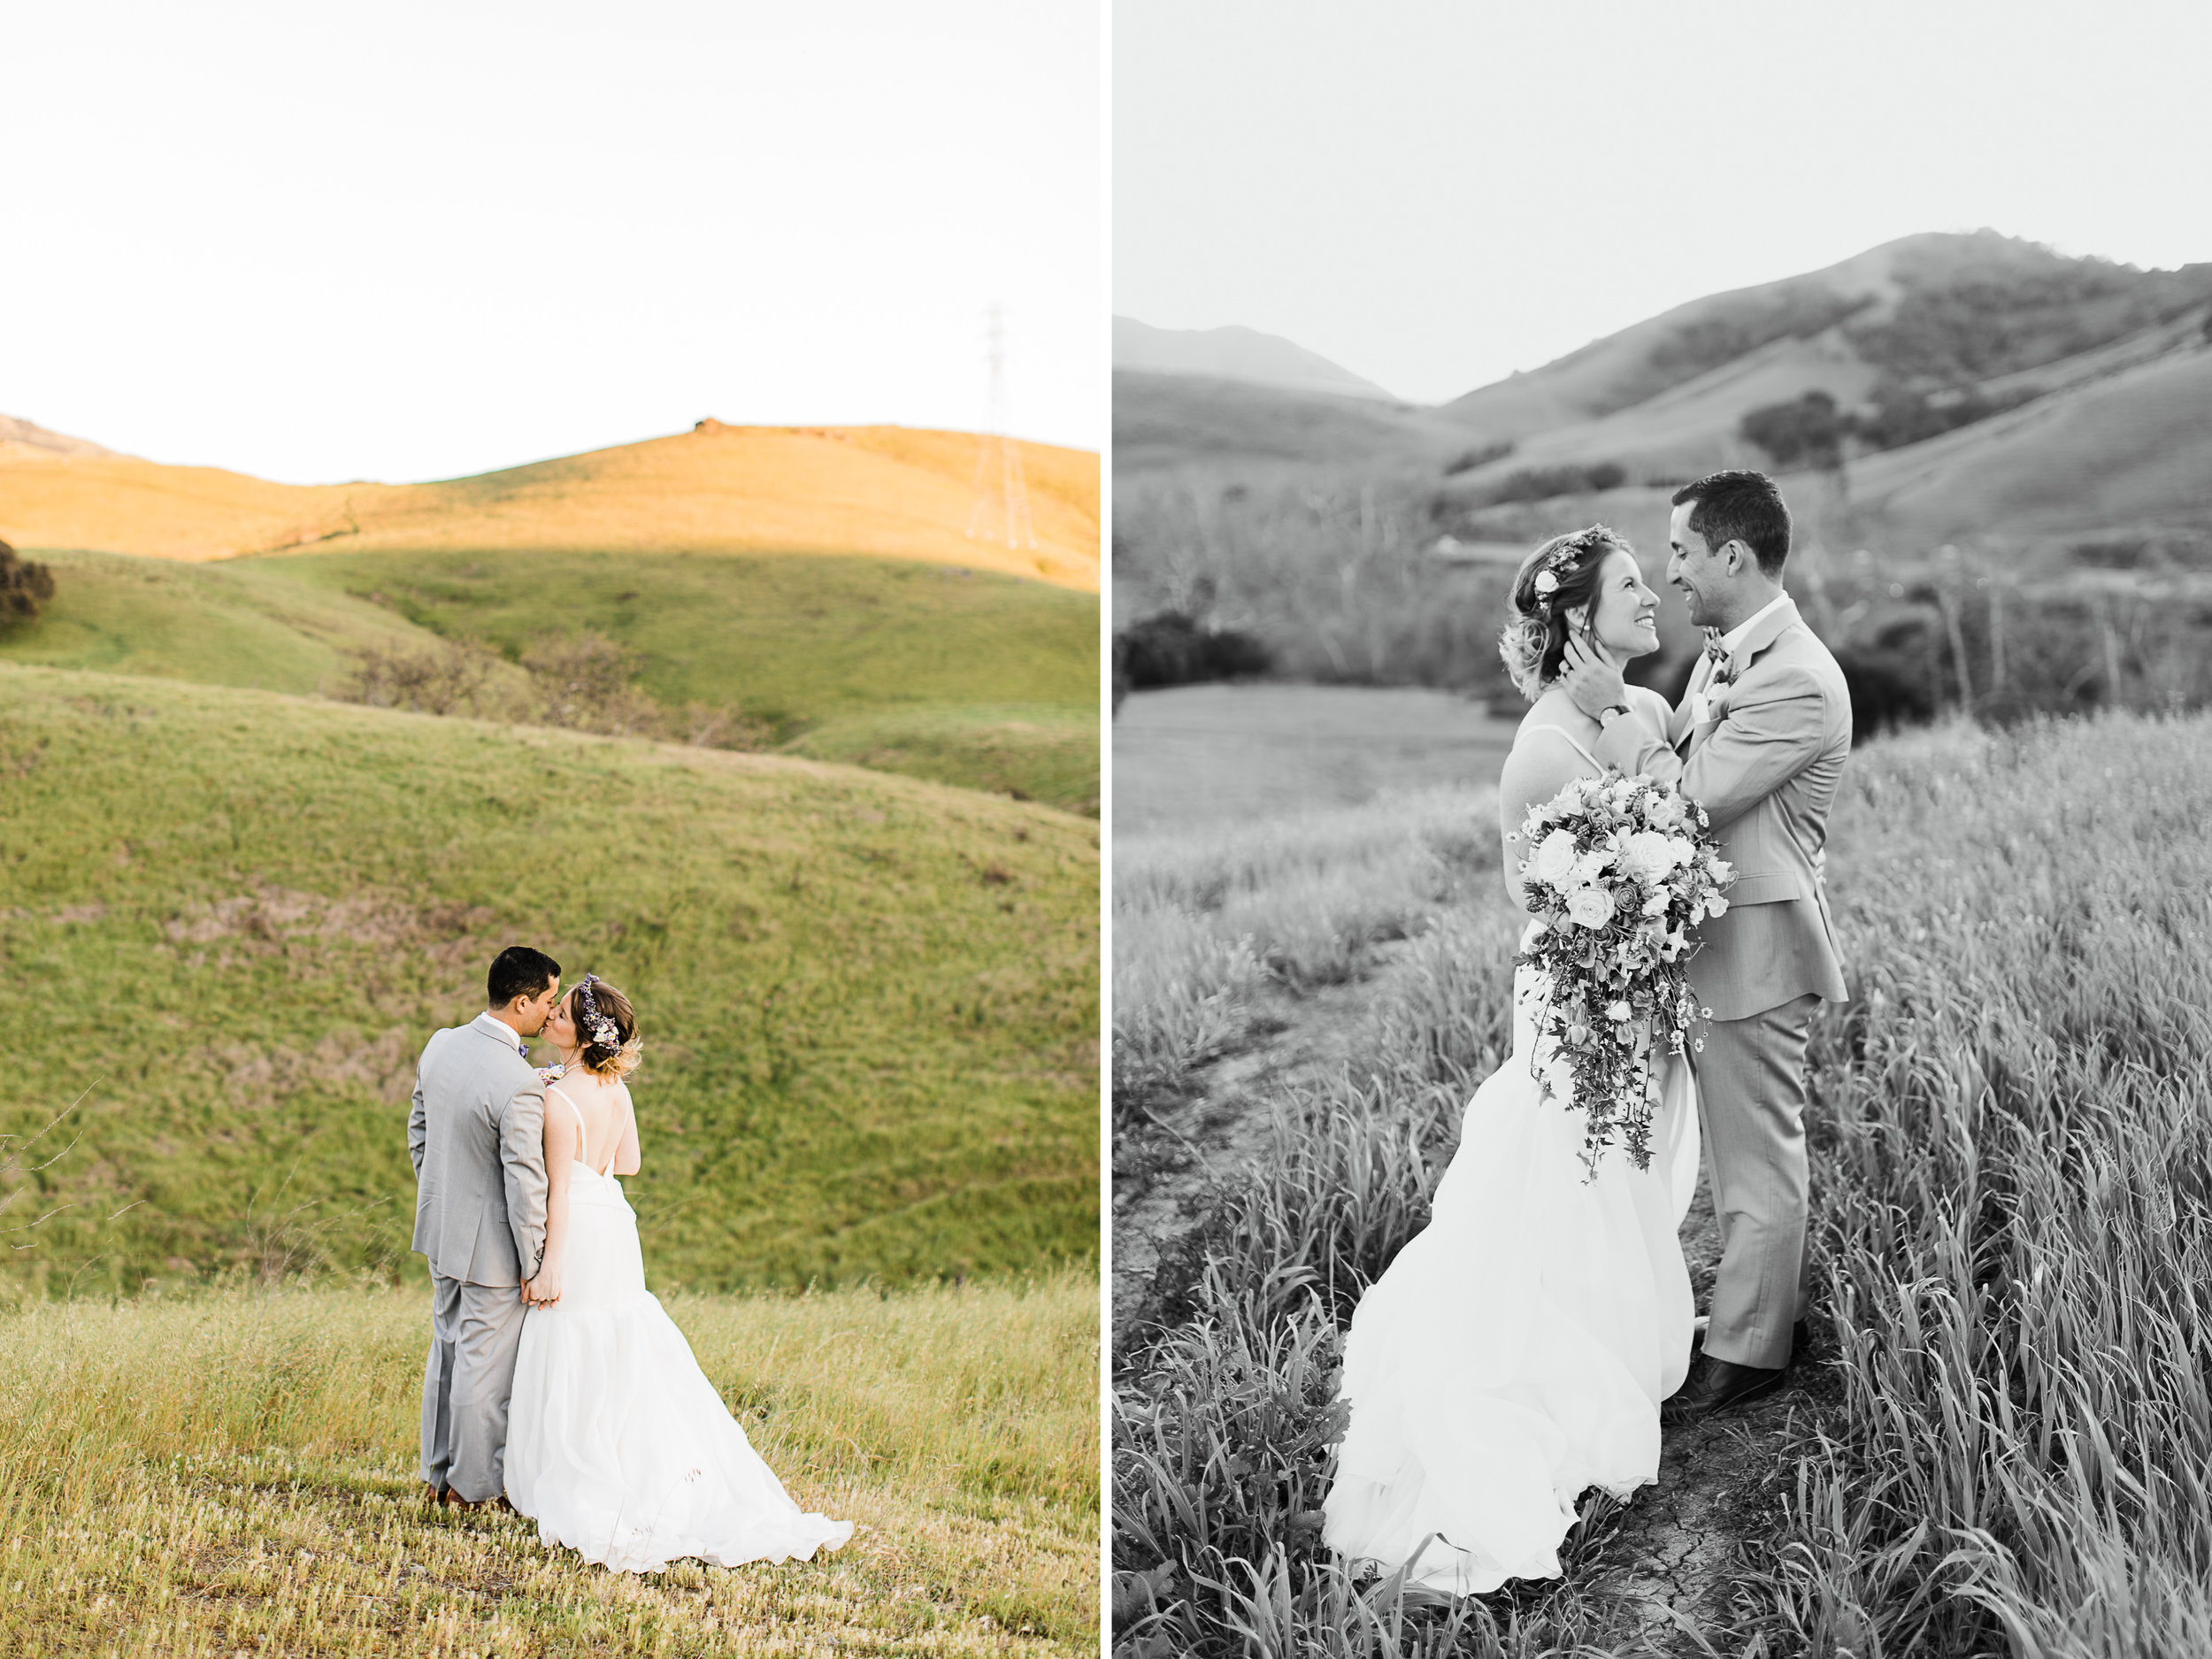 san luis obispo wedding at higuera ranch // central coast california wedding photographer // the hearnes adventure photography // www.thehearnes.com